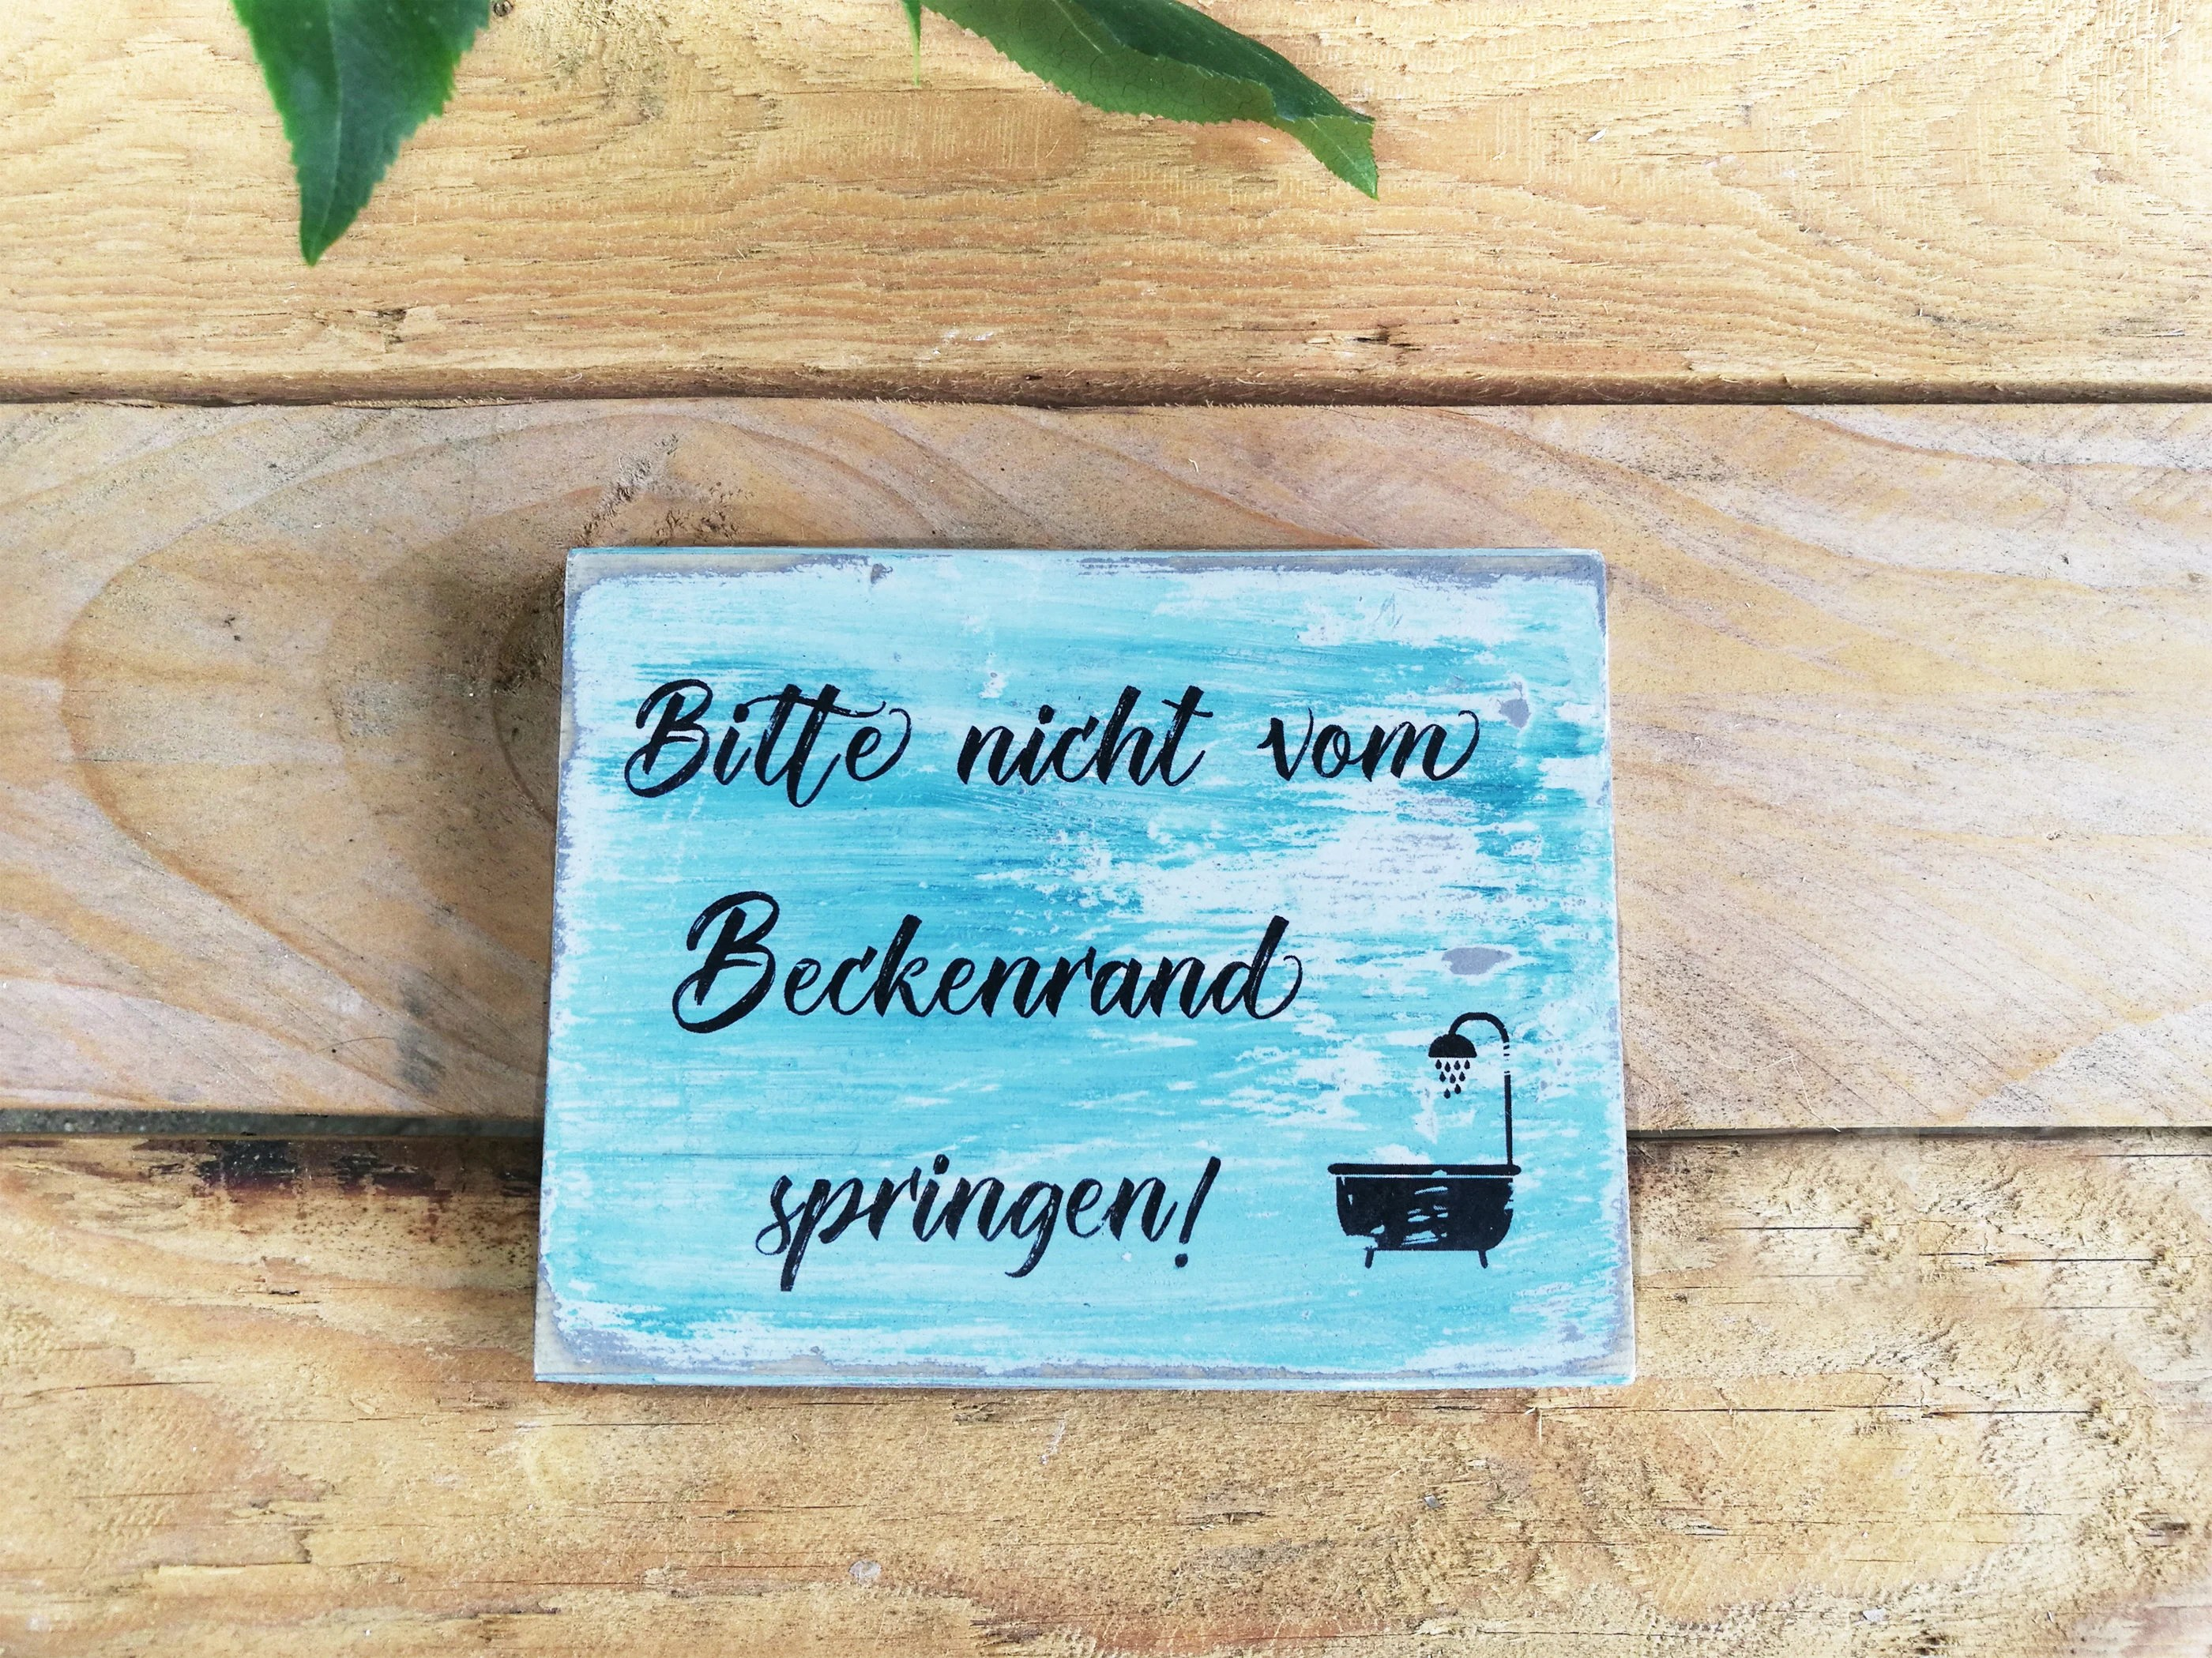 Pool Im Garten Pflichten Sign Sayings Wood Saying Bad Deco Bathroom Pictures Accessories Poster Balcony Bathtub Bathroom Rules Balkondeko Garden Ceramics Garden